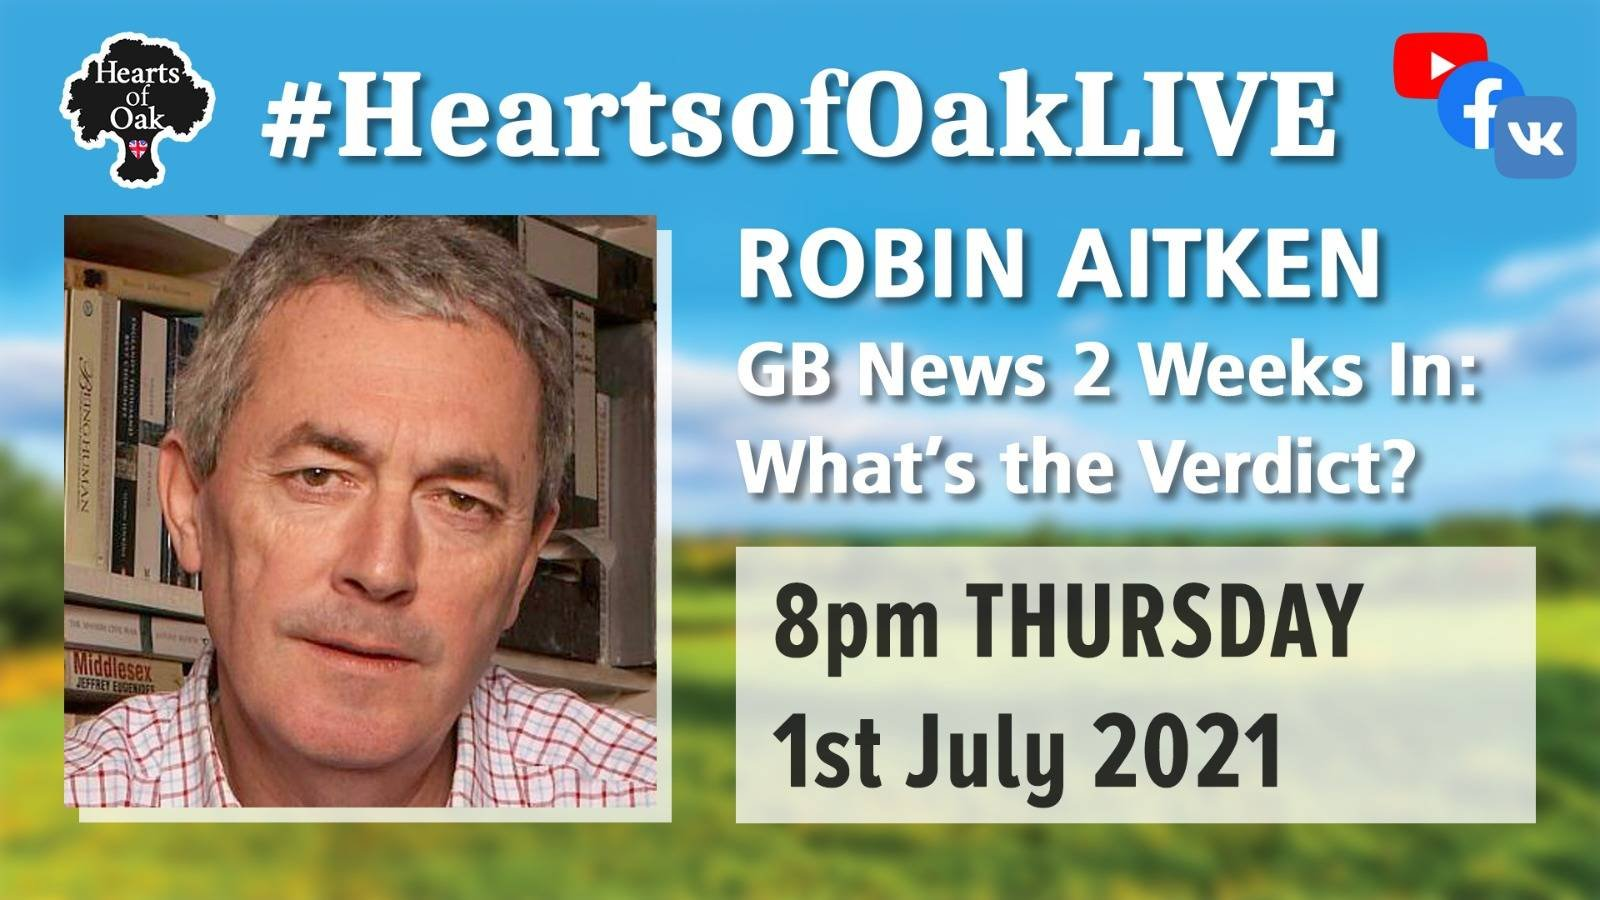 Robin Aitken: GBNews 2 weeks in - What's the Verdict?